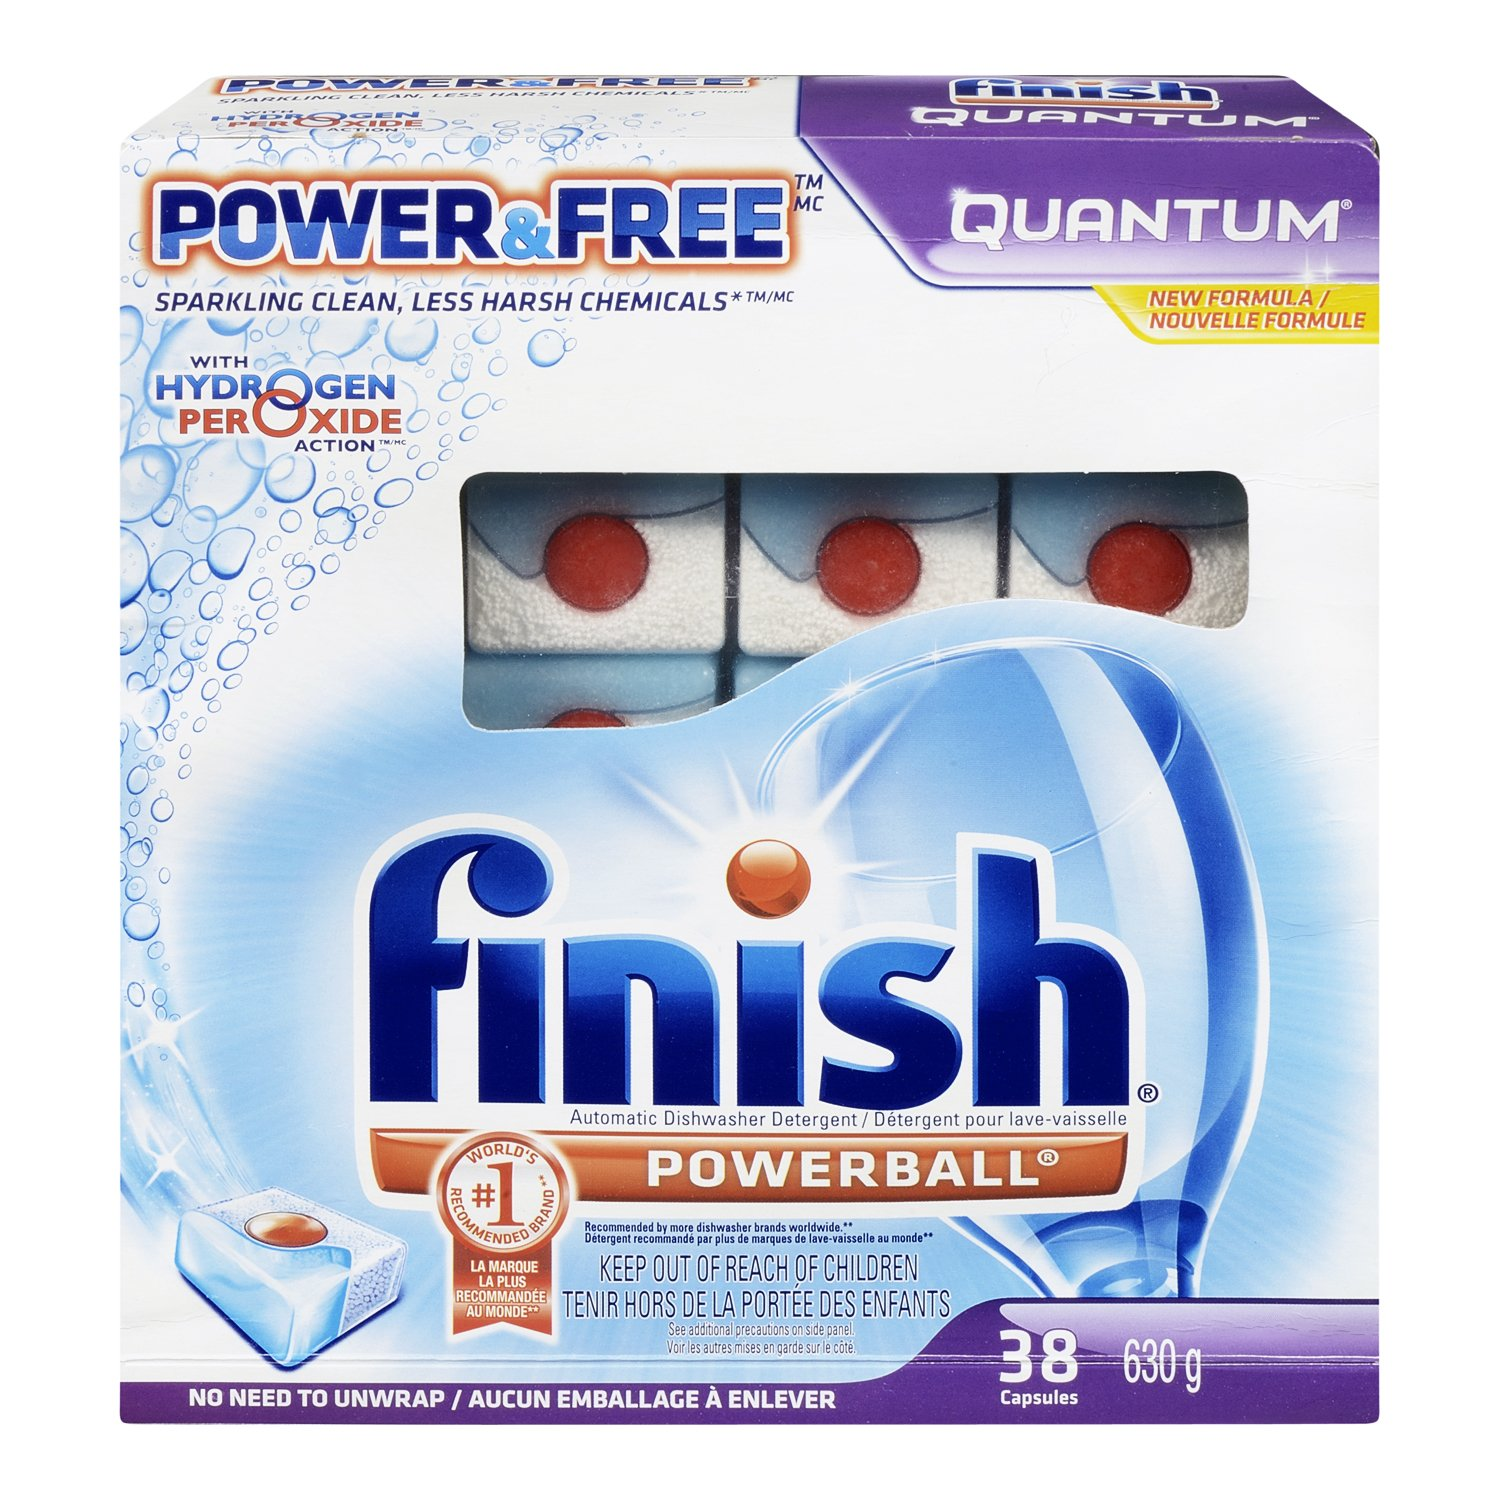 Finish Quantum Dishwasher Detergent, Power and Free, 38 Count by Finish (Image #6)